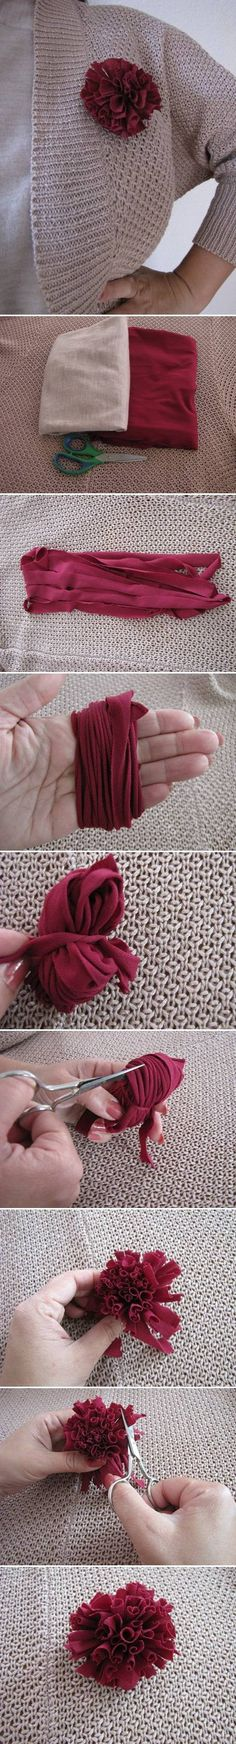 DIY Simple Fabric Brooch DIY Projects | UsefulDIY.com Follow Us on Facebook ==> http://www.facebook.com/UsefulDiy